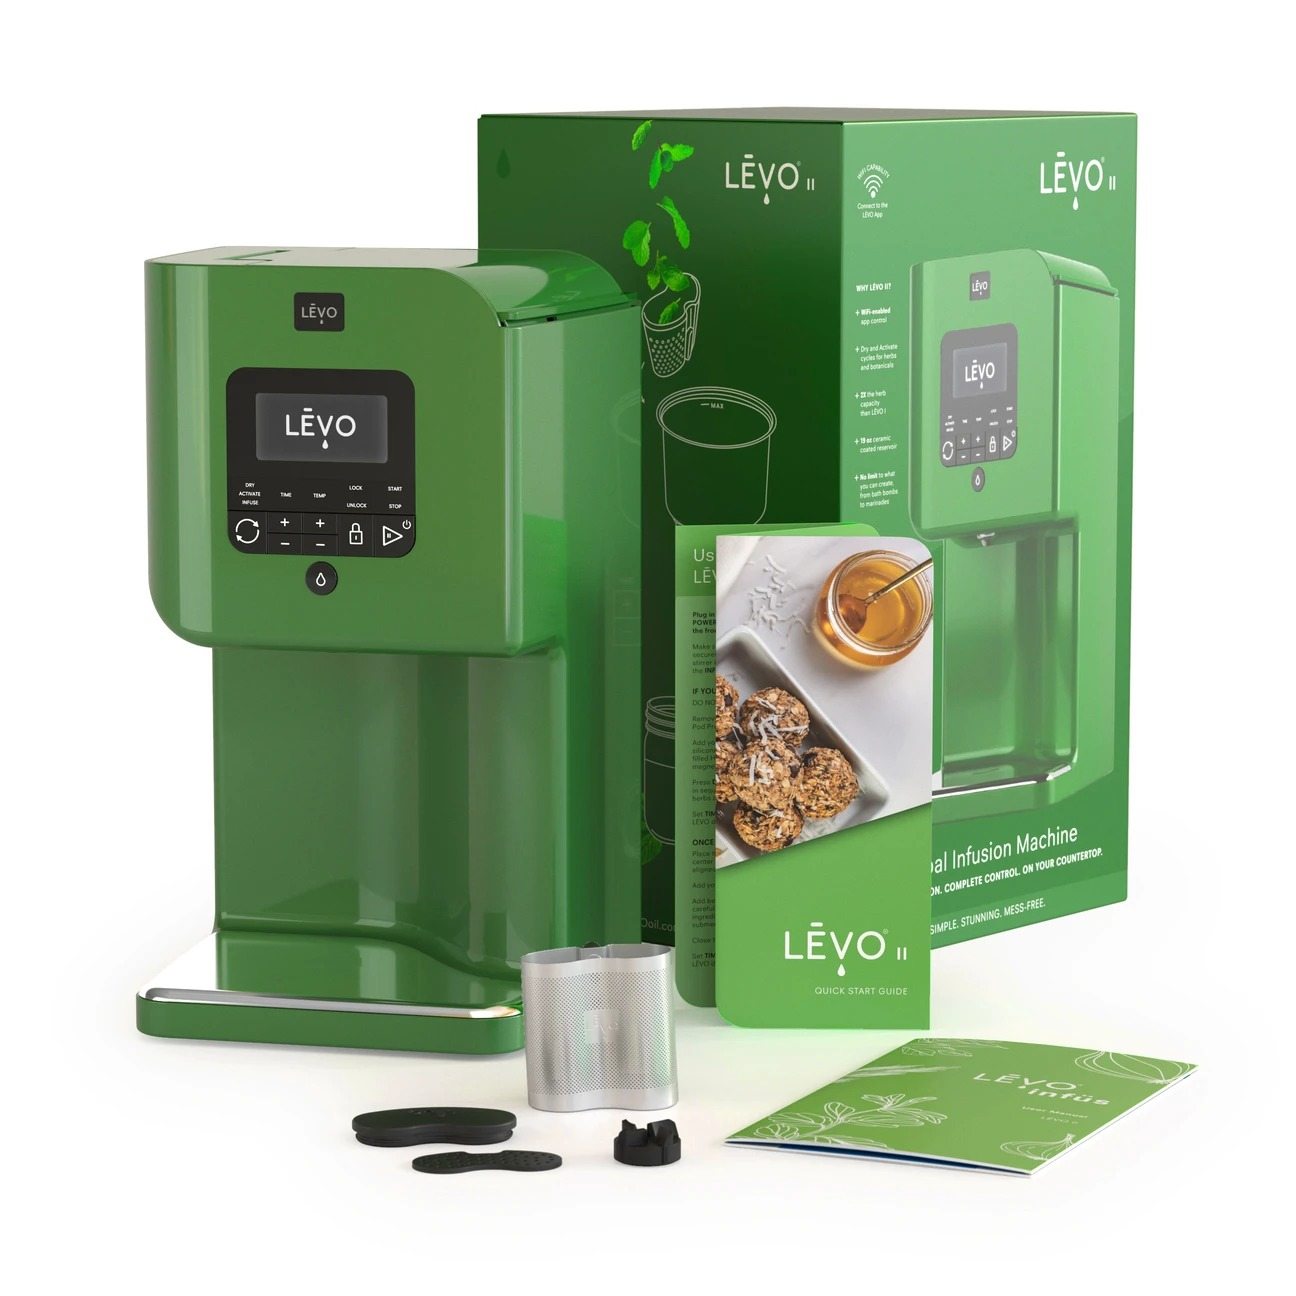 LEVO II Herbal Oil and Butter Infusion Machine